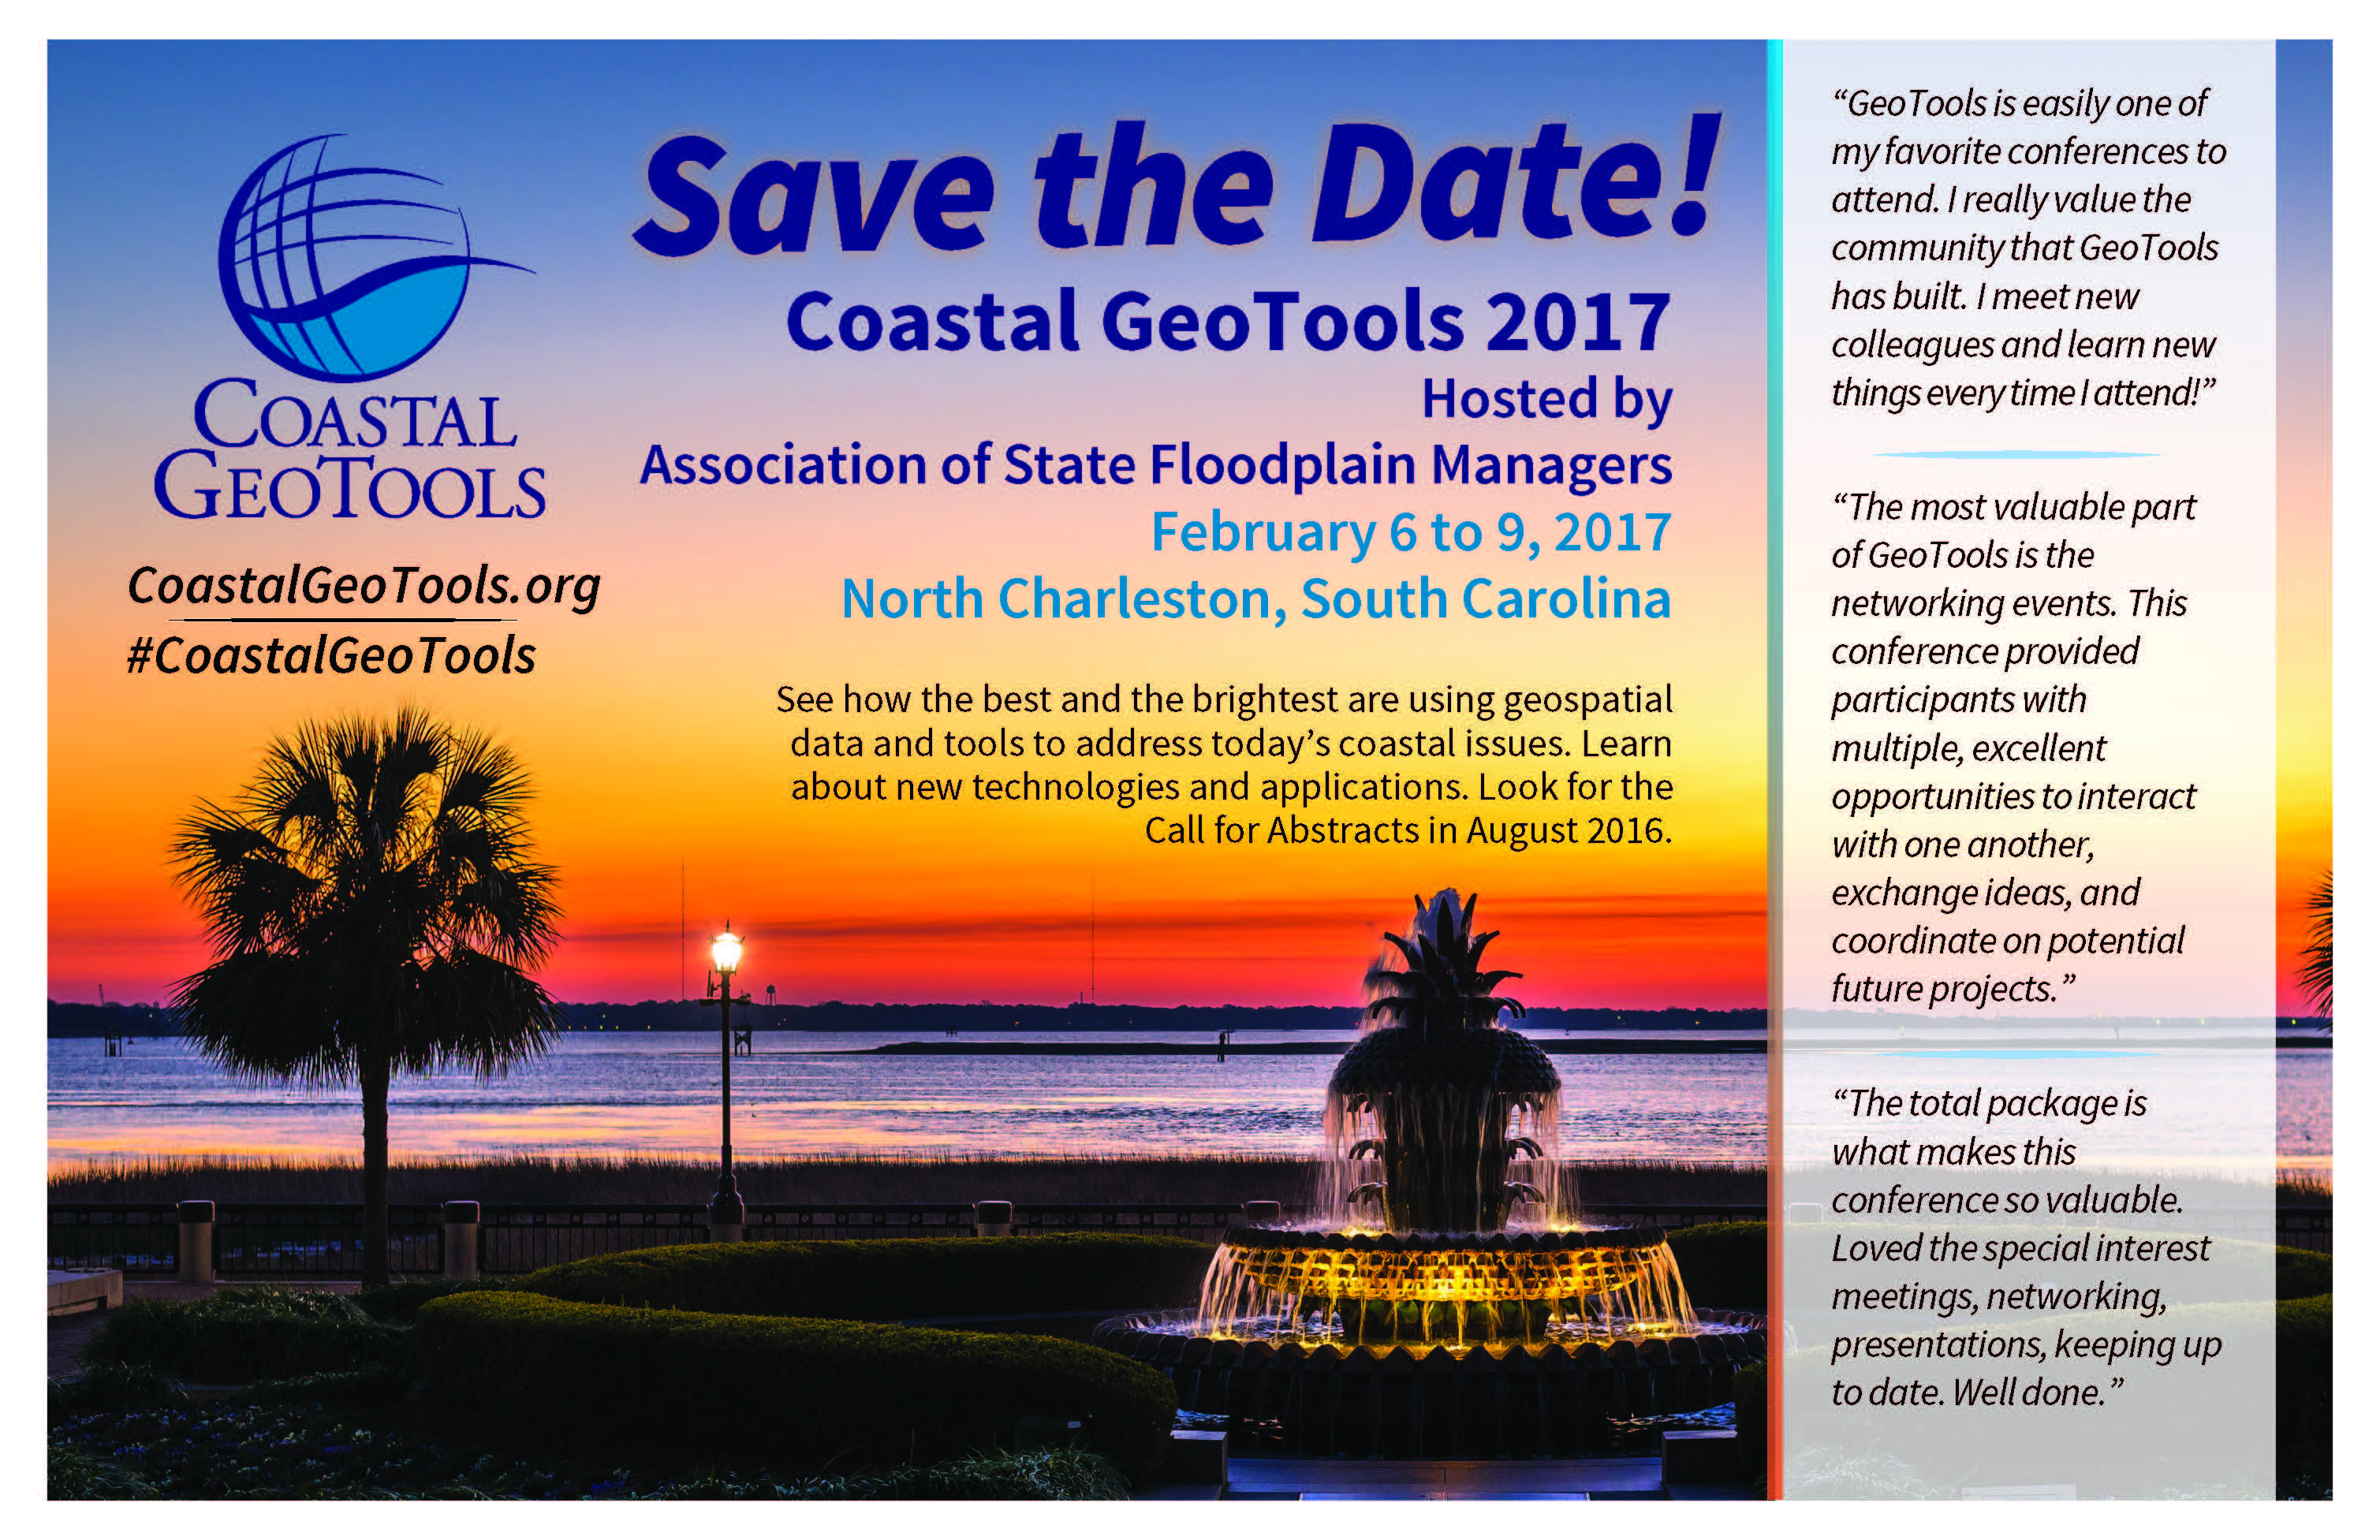 save the date coastal geotools 2017 in charleston south carolina